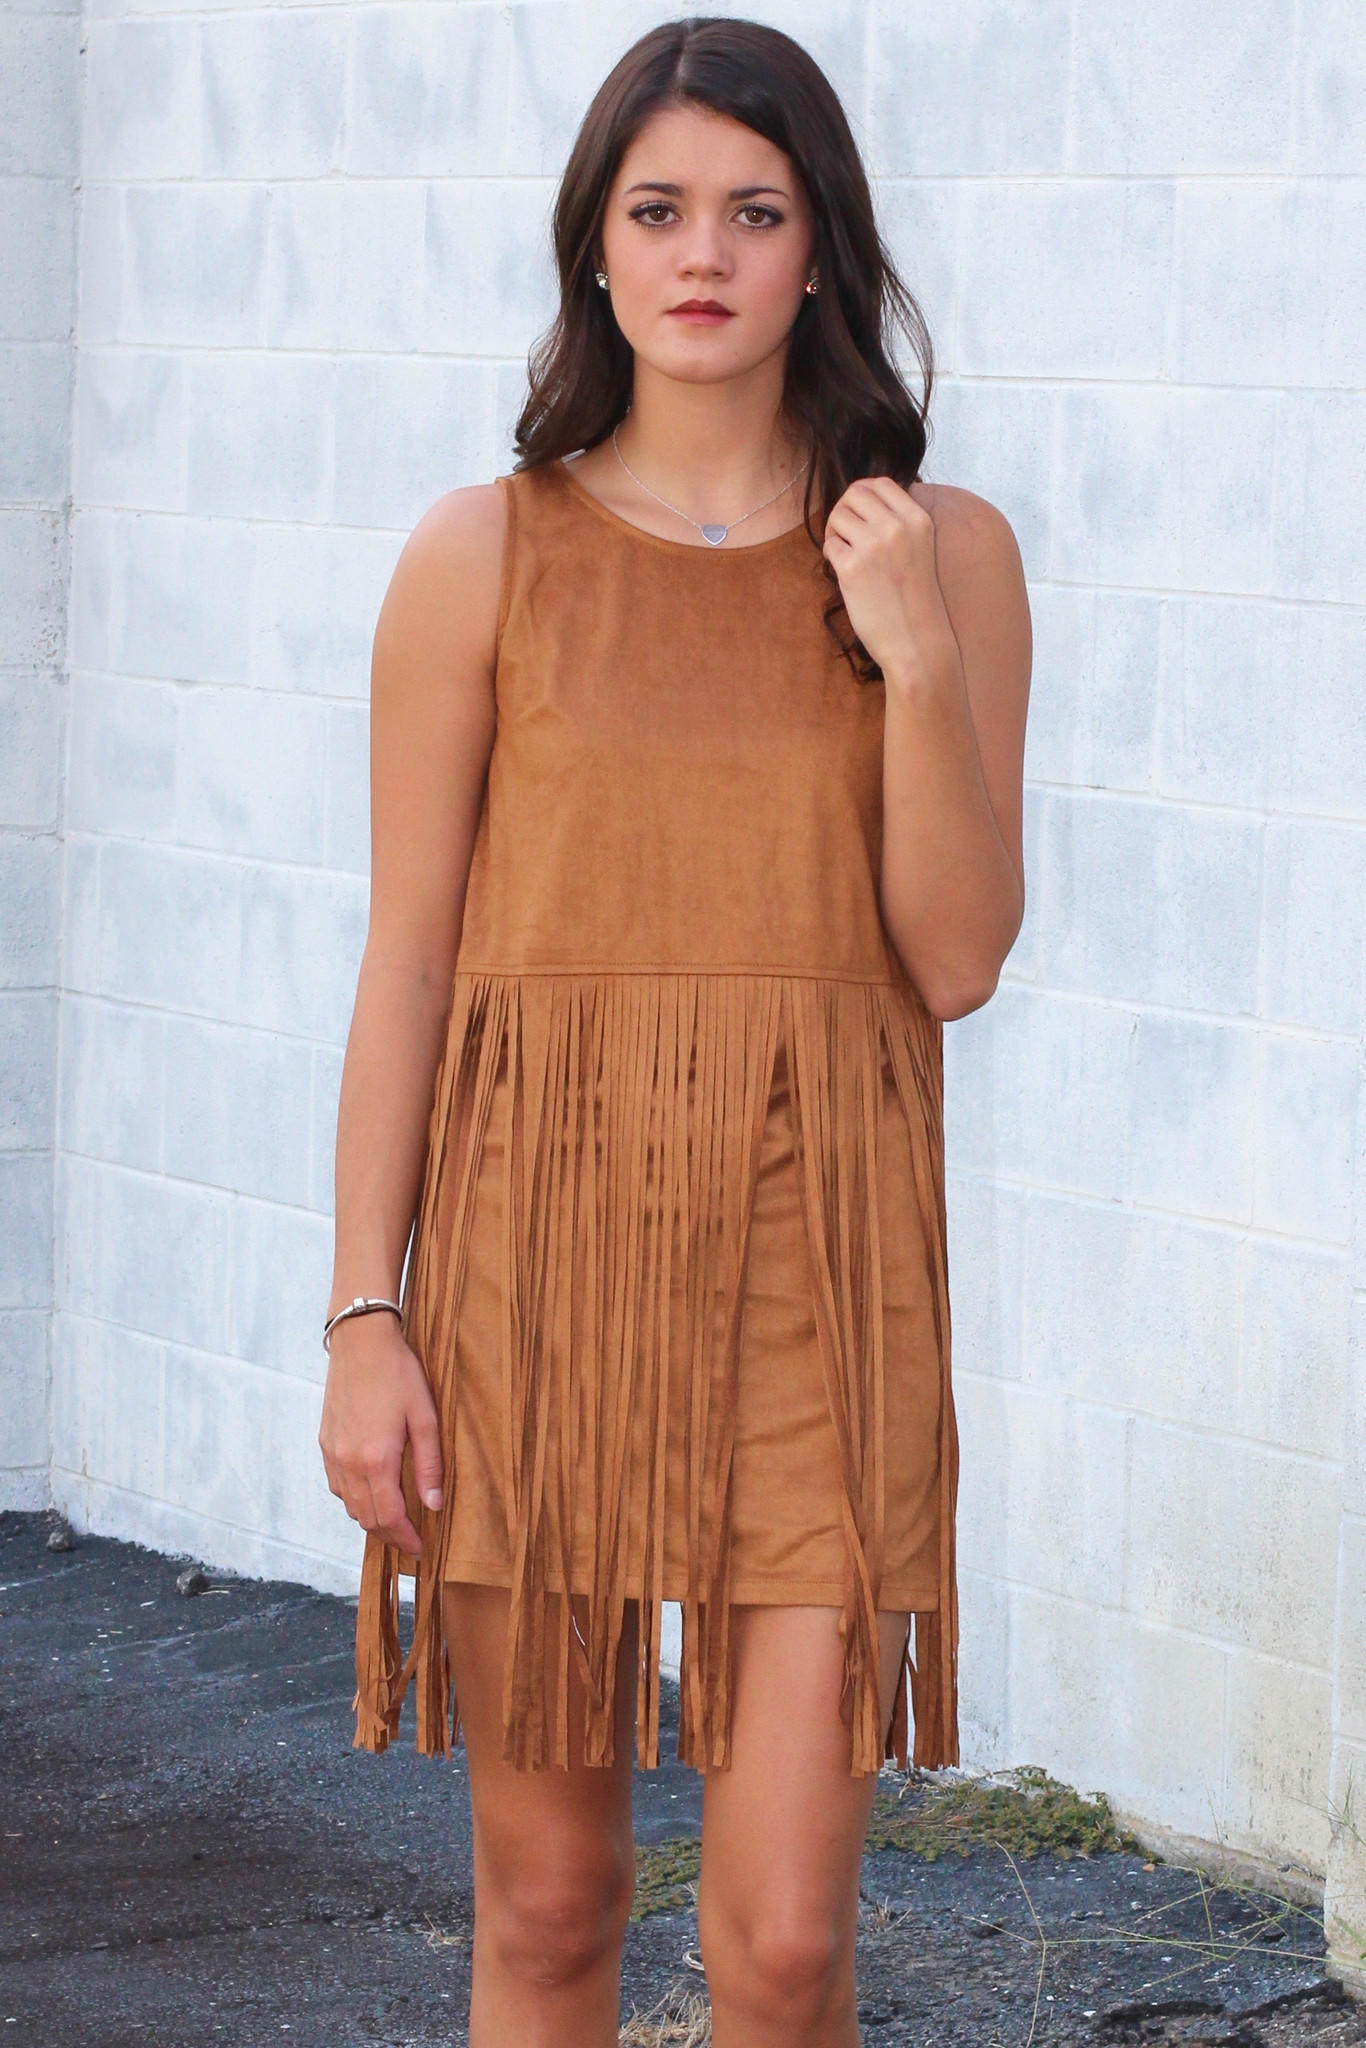 Rain Dance Suede + Fringe Dress  Camel  from The Fair Lady 861a9b17f